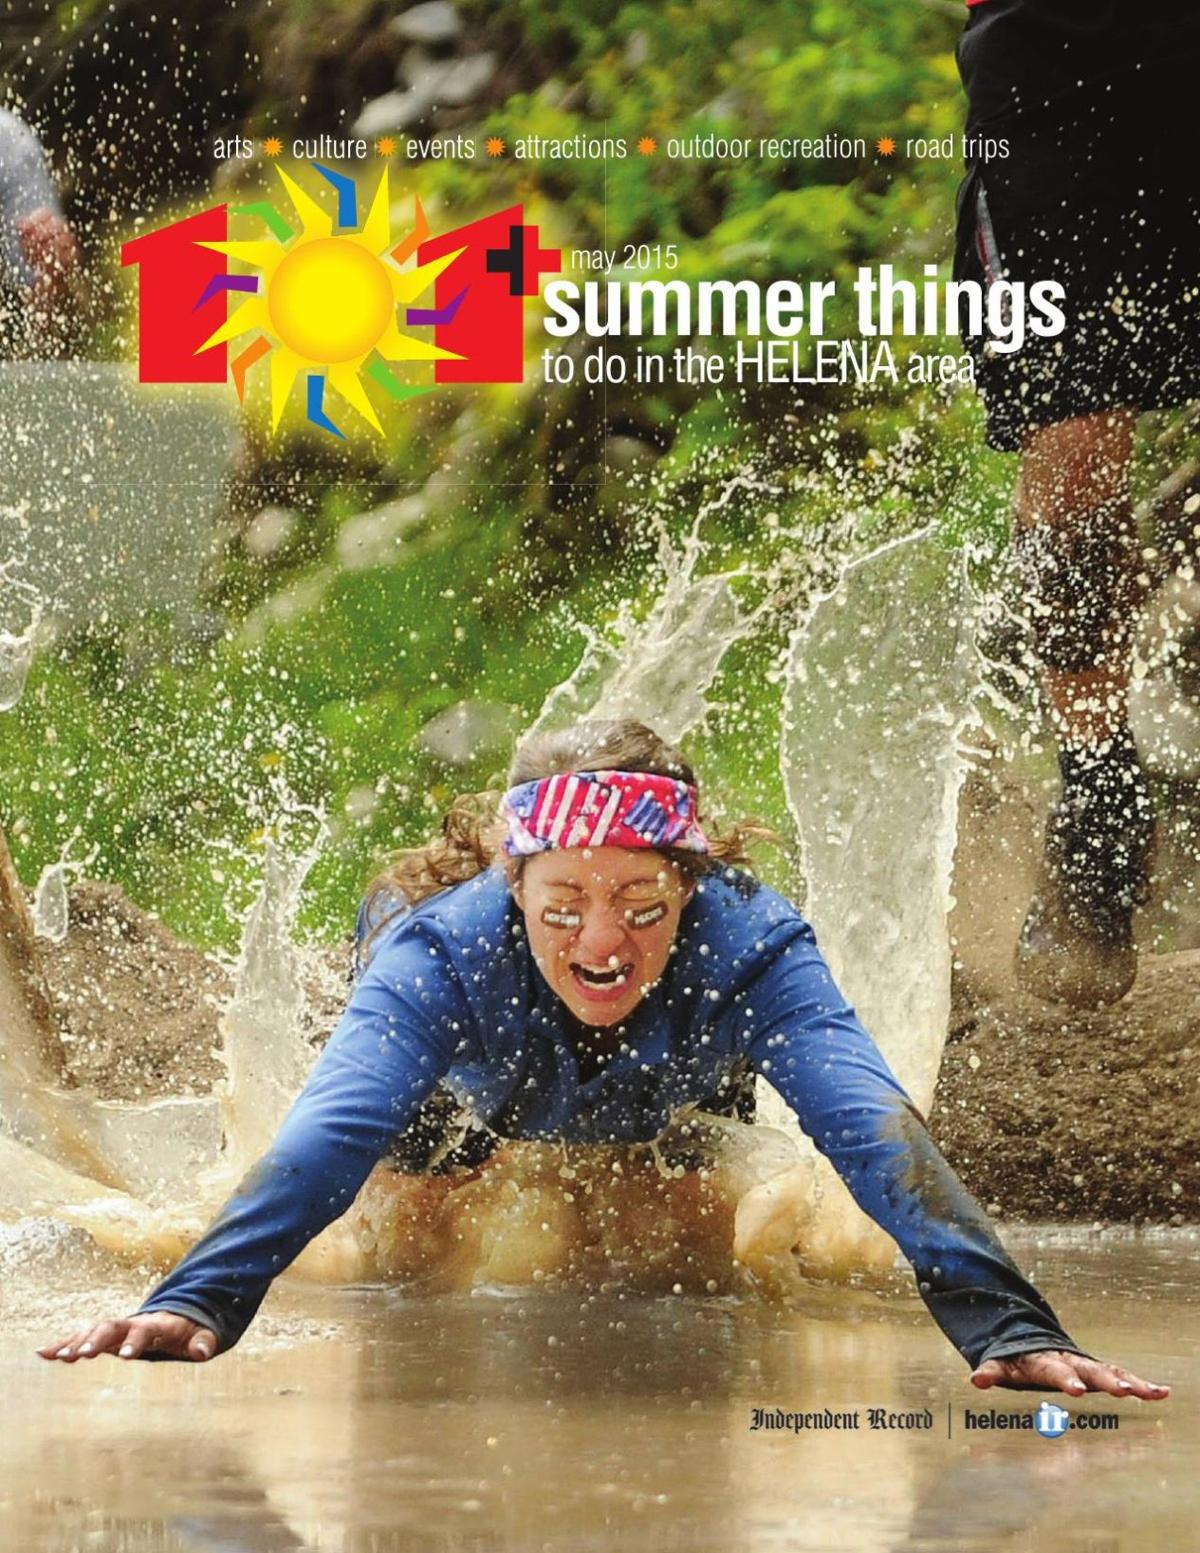 101 summer things to do in Helena 2015